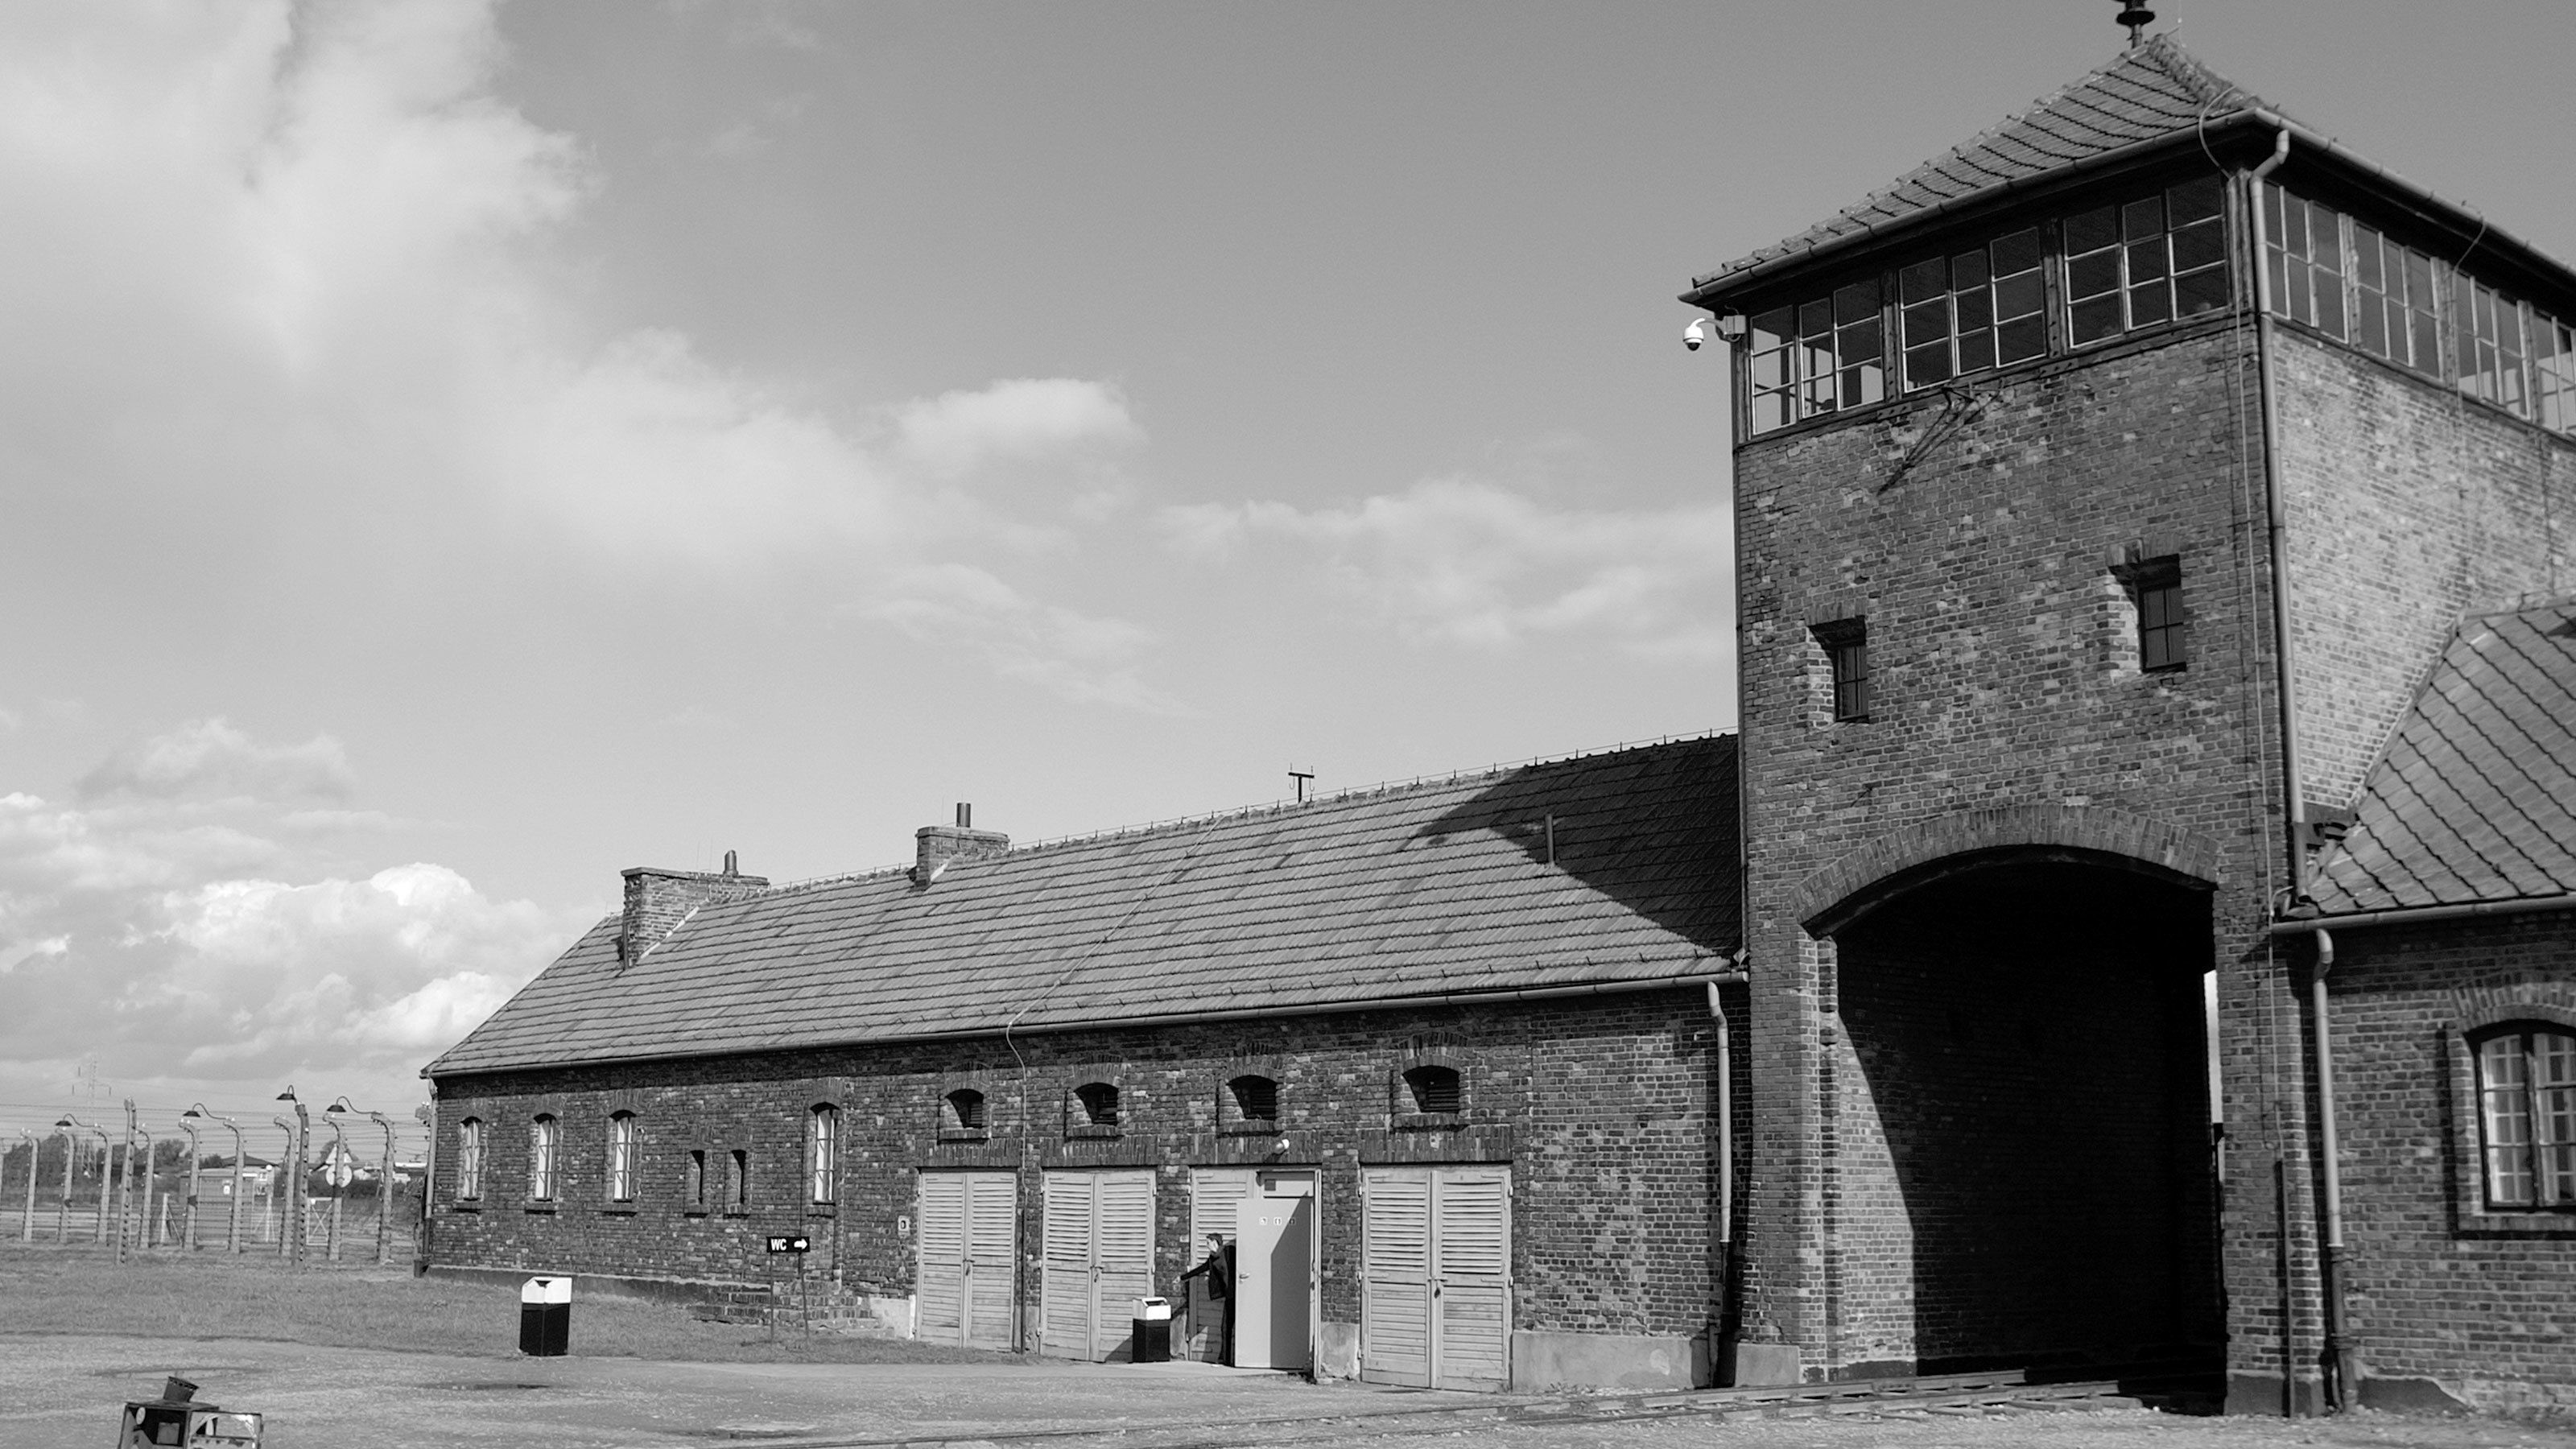 An old guard tower in Auschwitz